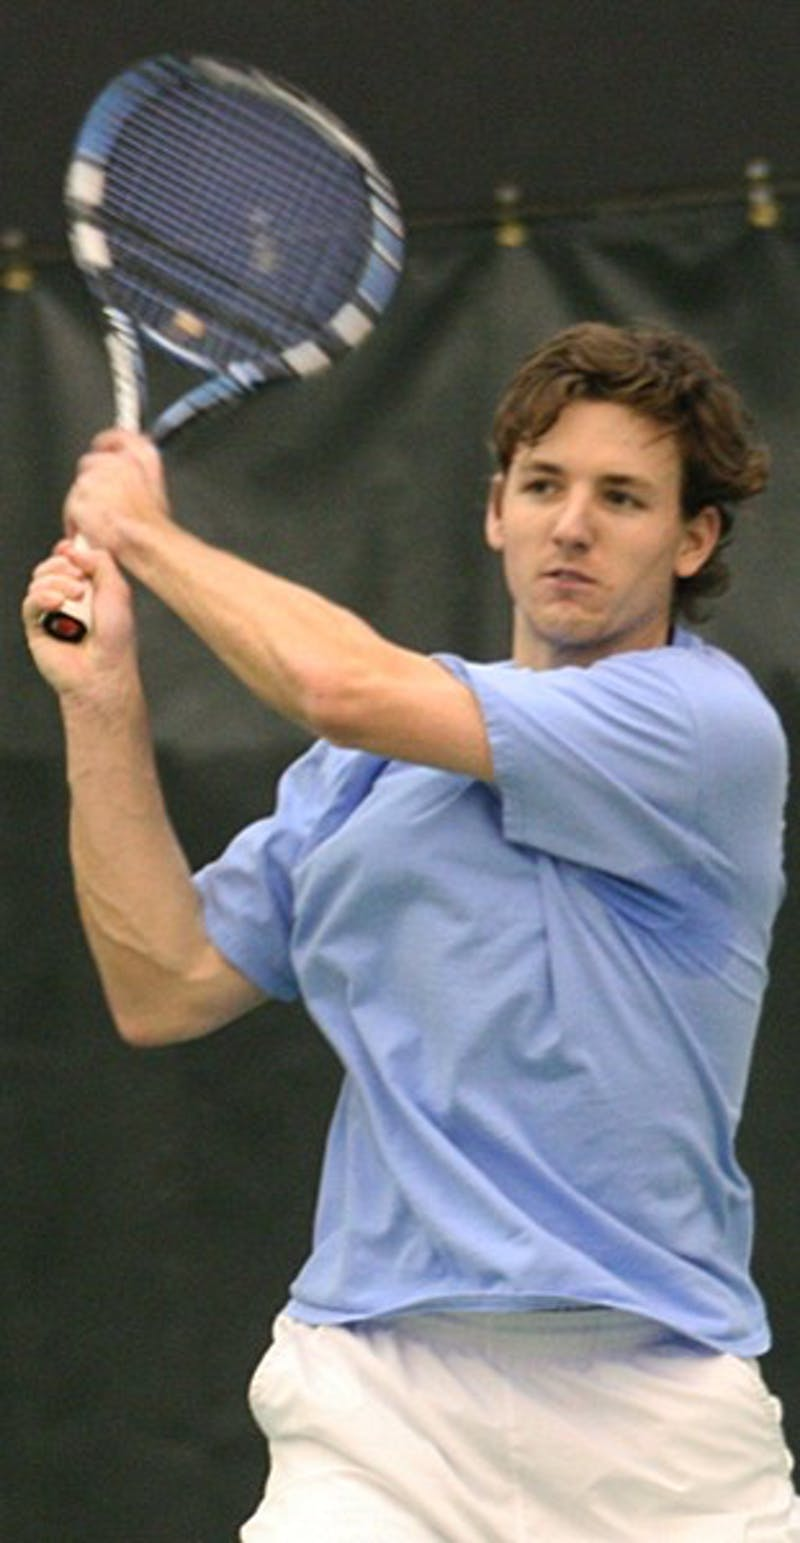 Kyle Baker struggled down the stretch of his first match this season, but he pulled it together for a win. DTH/Daixi Xu